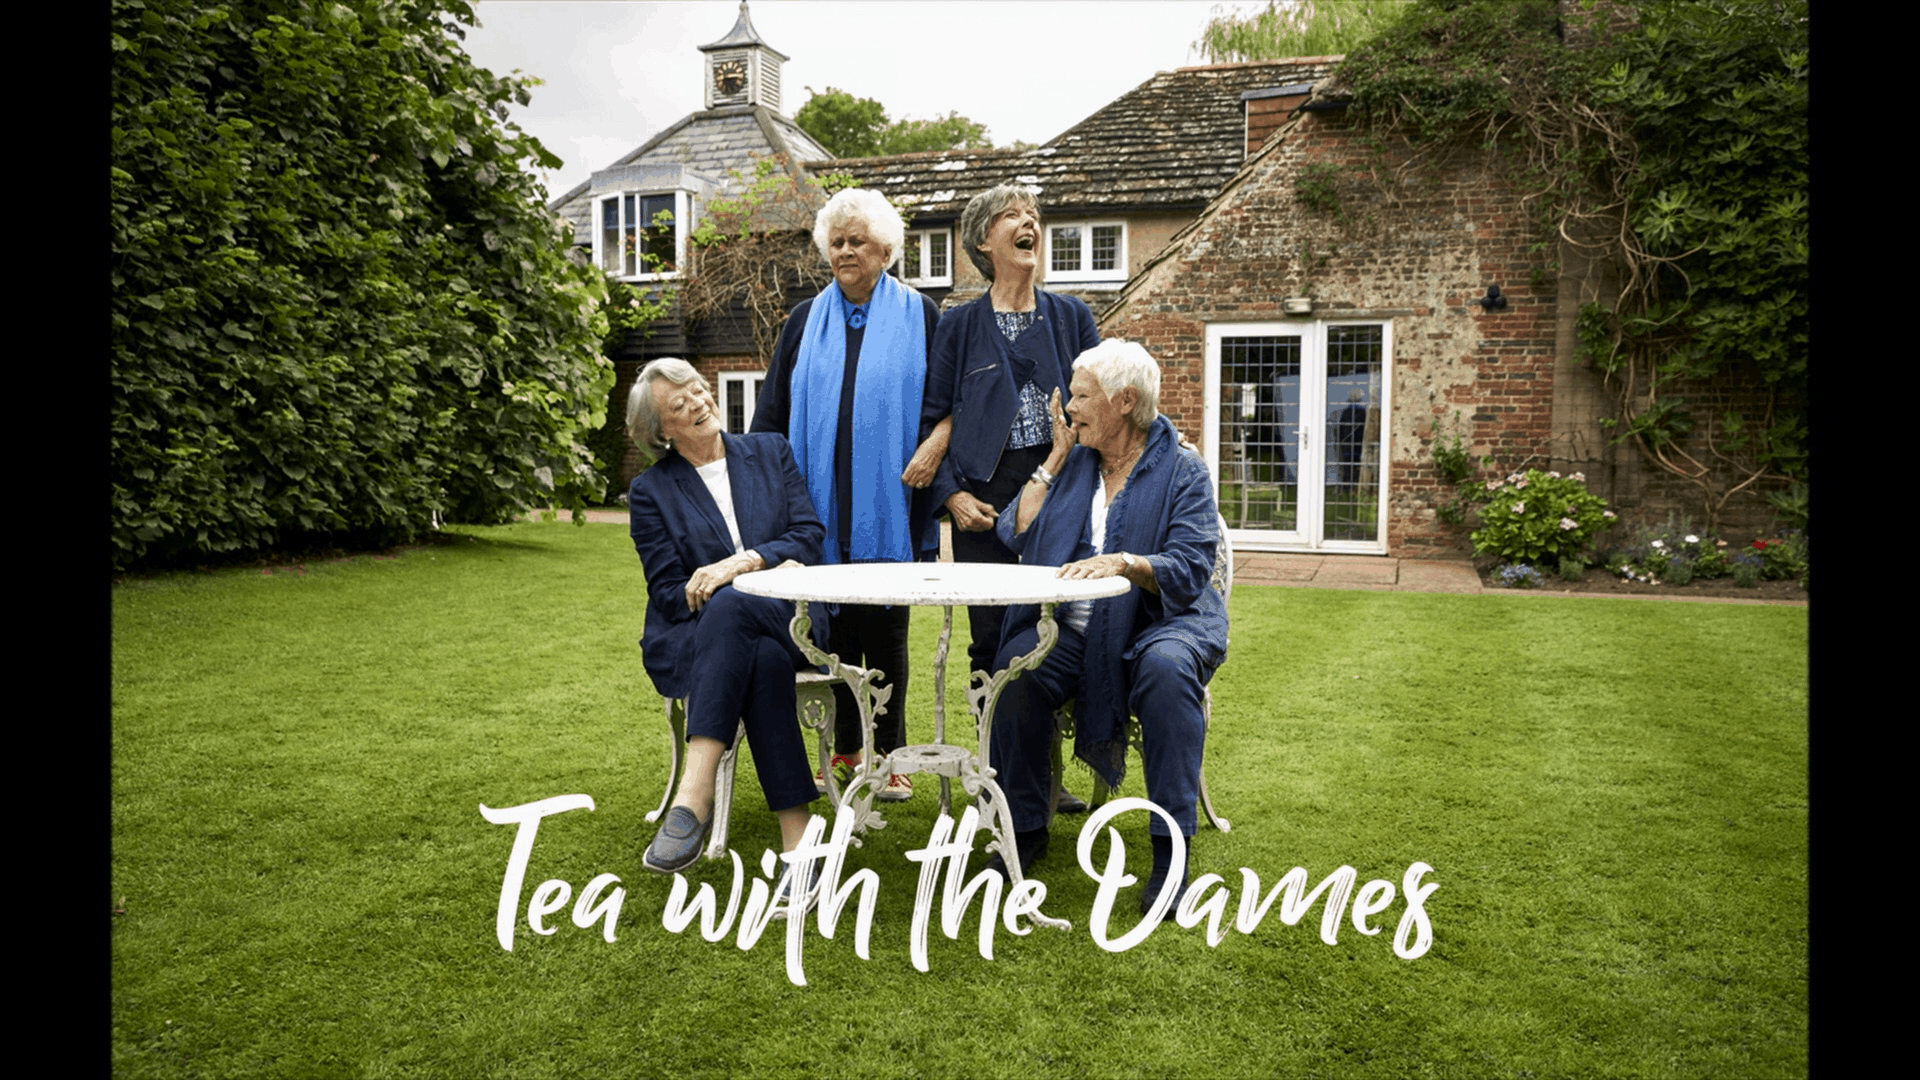 tea with the dames title